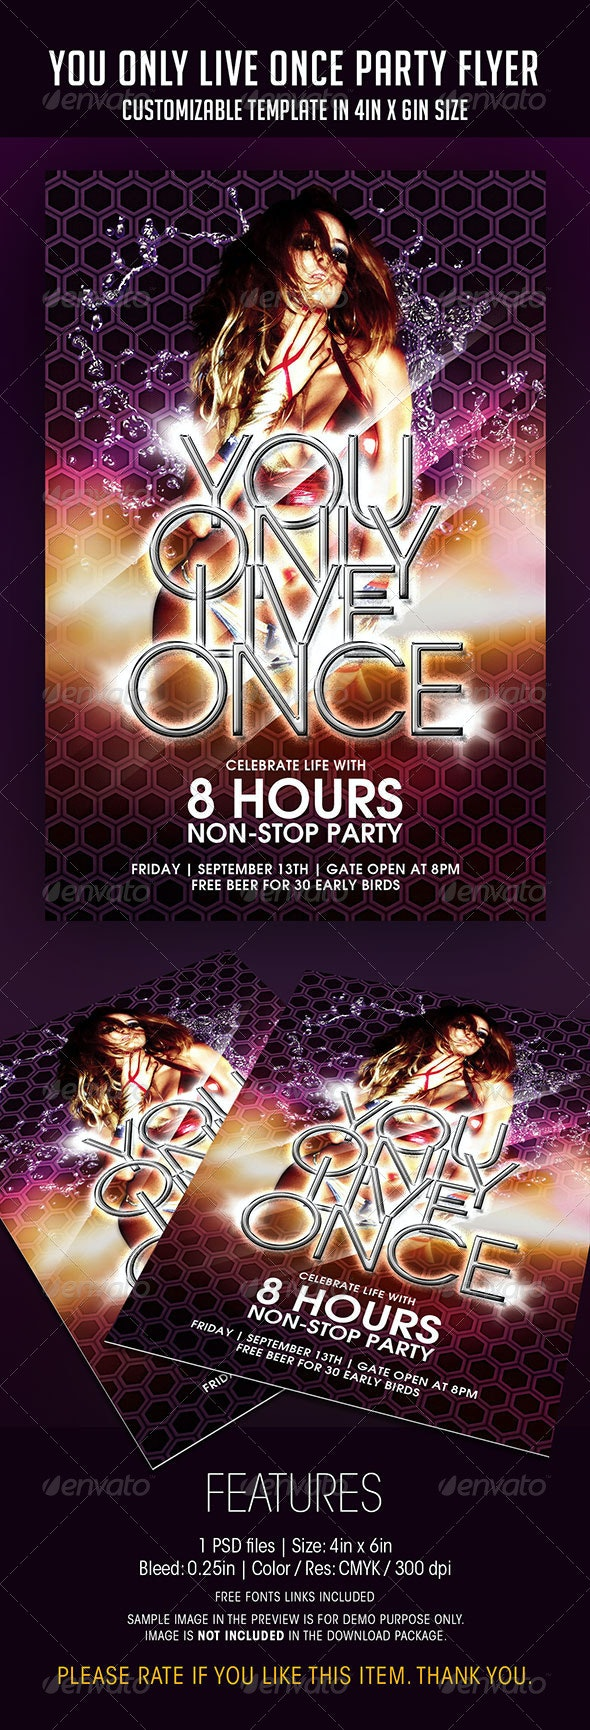 You Only Live Once Party Flyer - Clubs & Parties Events